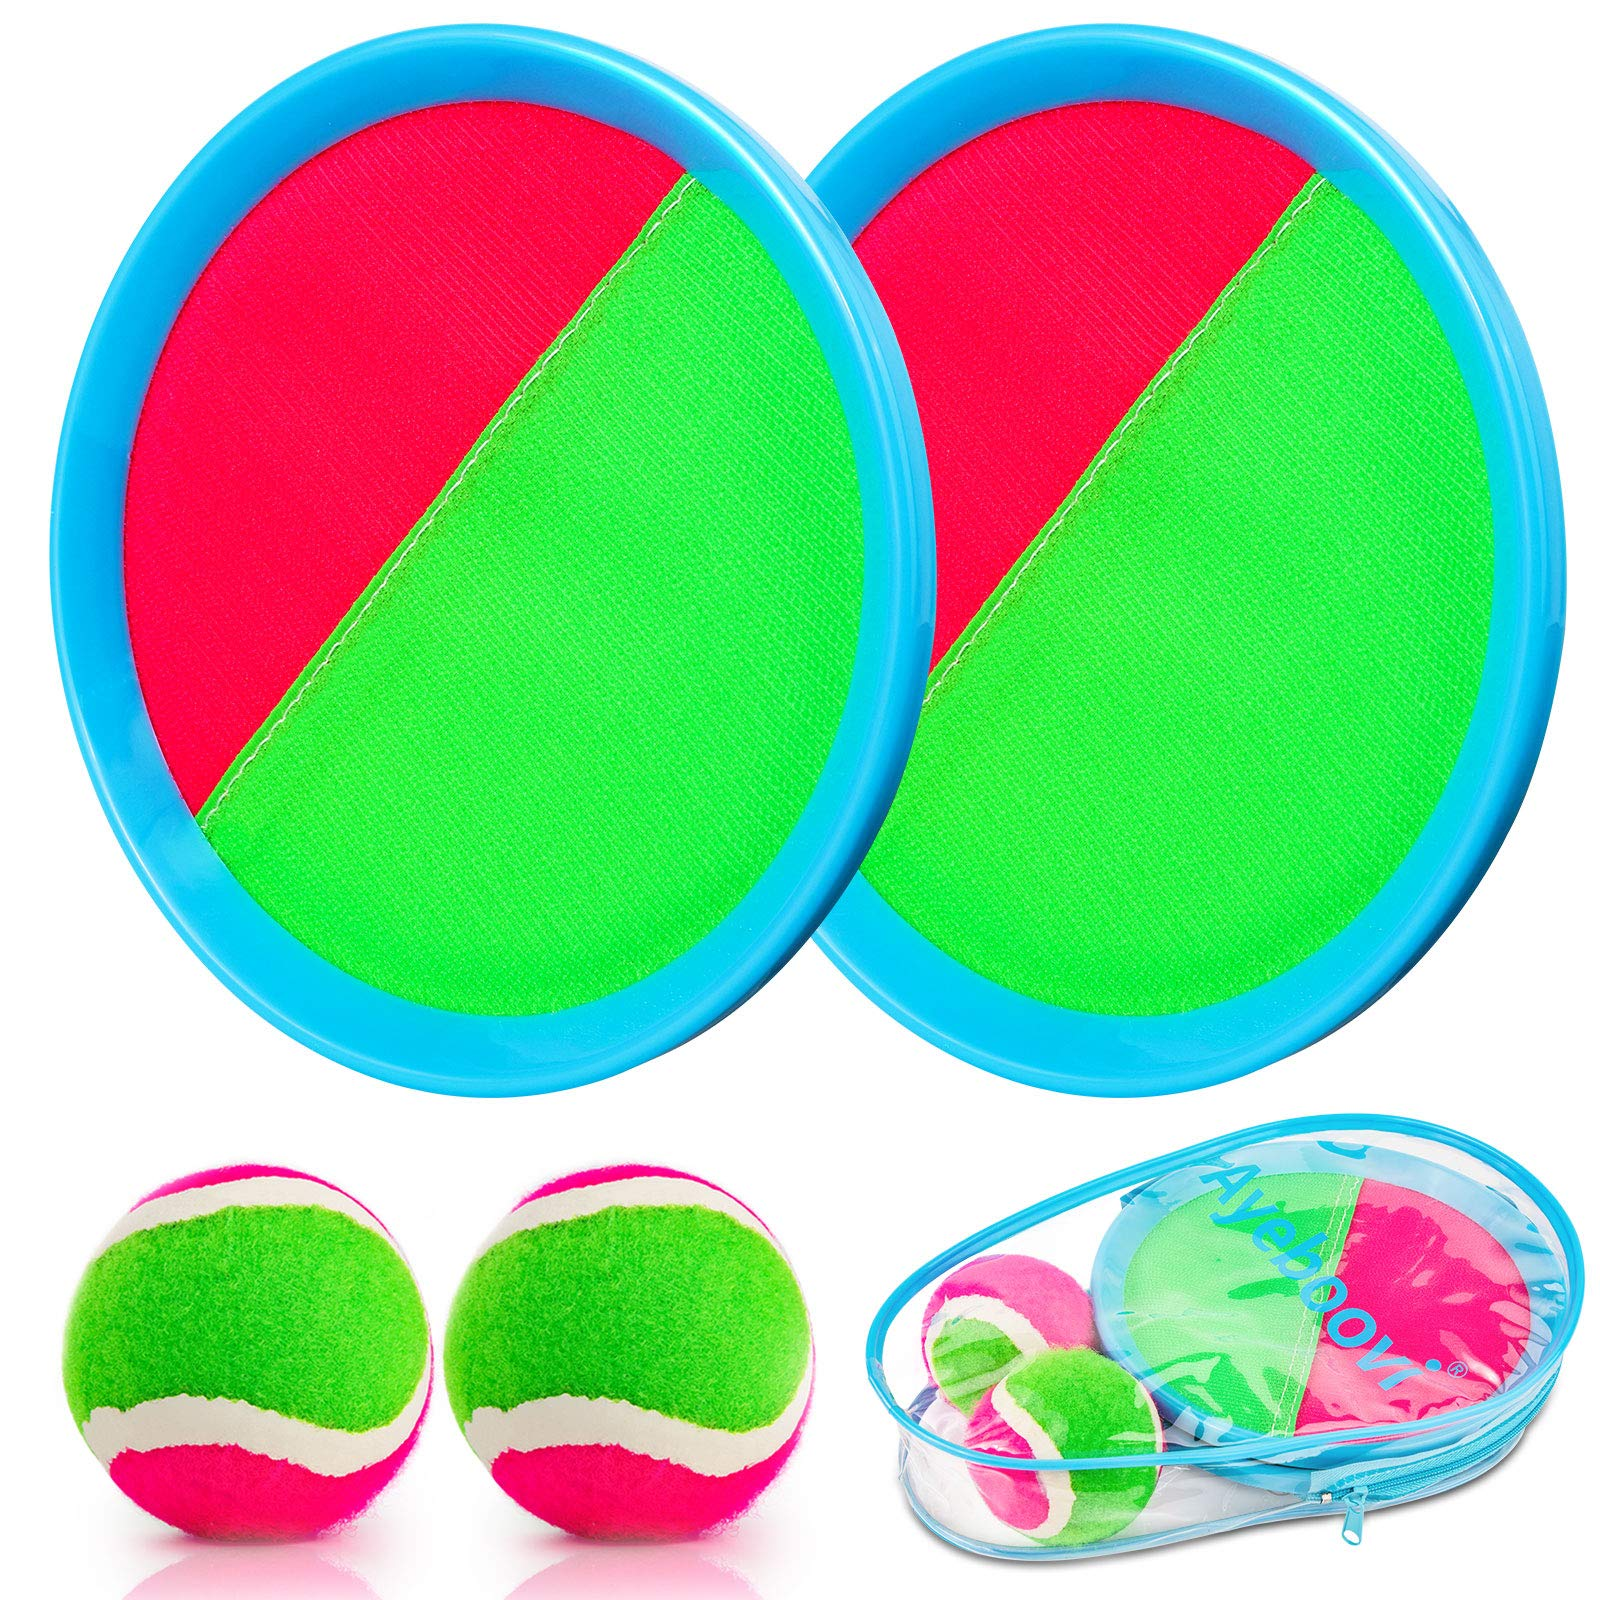 Ayeboovi Toss and Catch Ball Game Outdoor Game for Kids Backyard Games Beach Game for Kids(Upgraded) (2 Paddles 2 Balls)